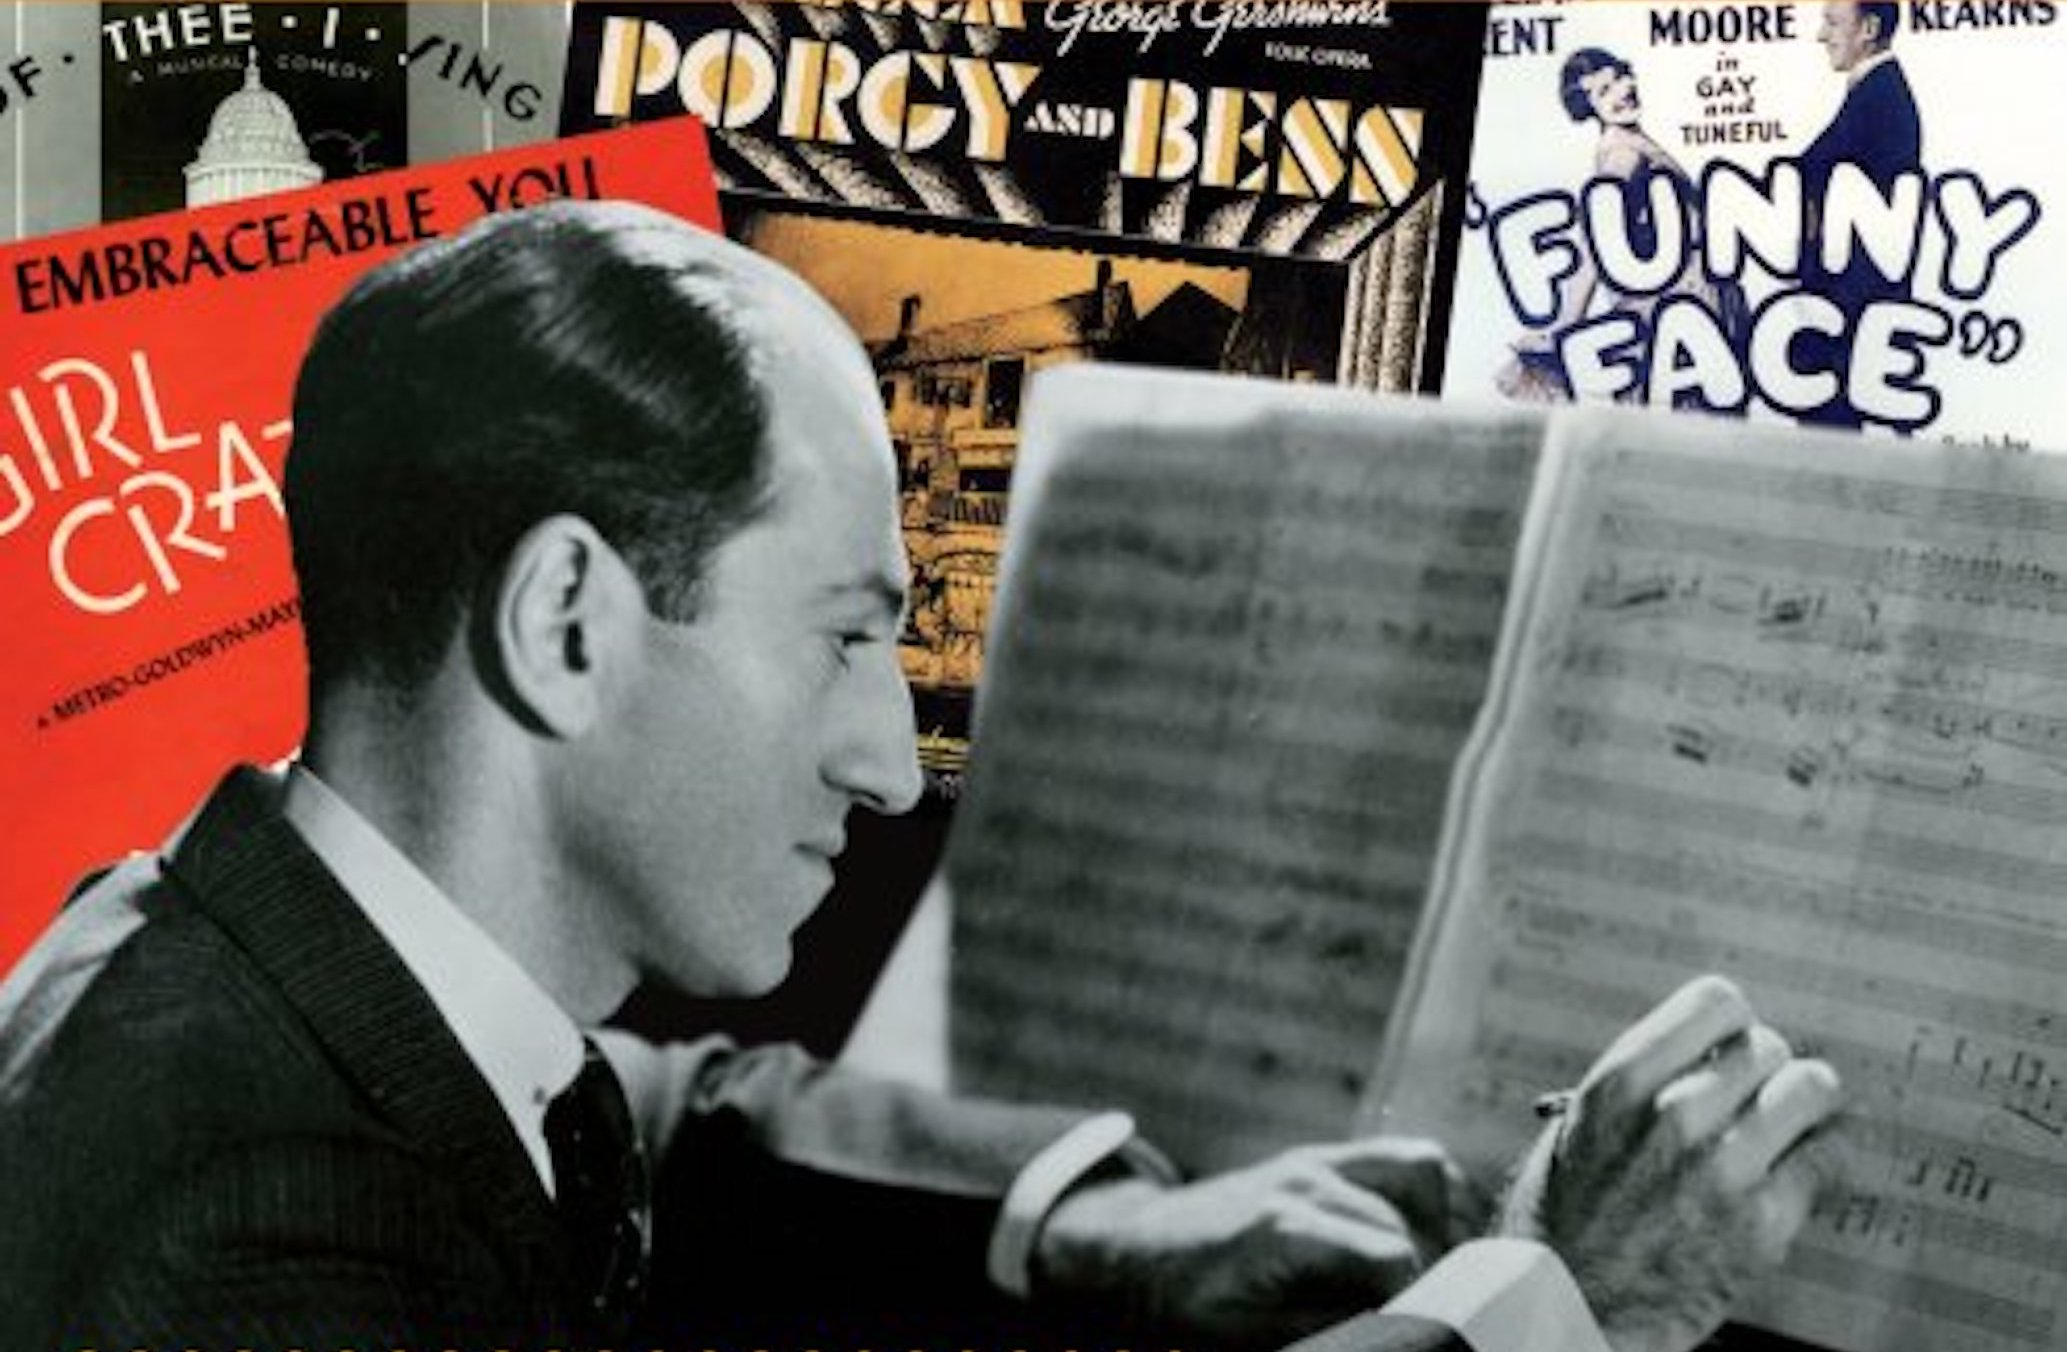 FASCINATING GERSHWIN